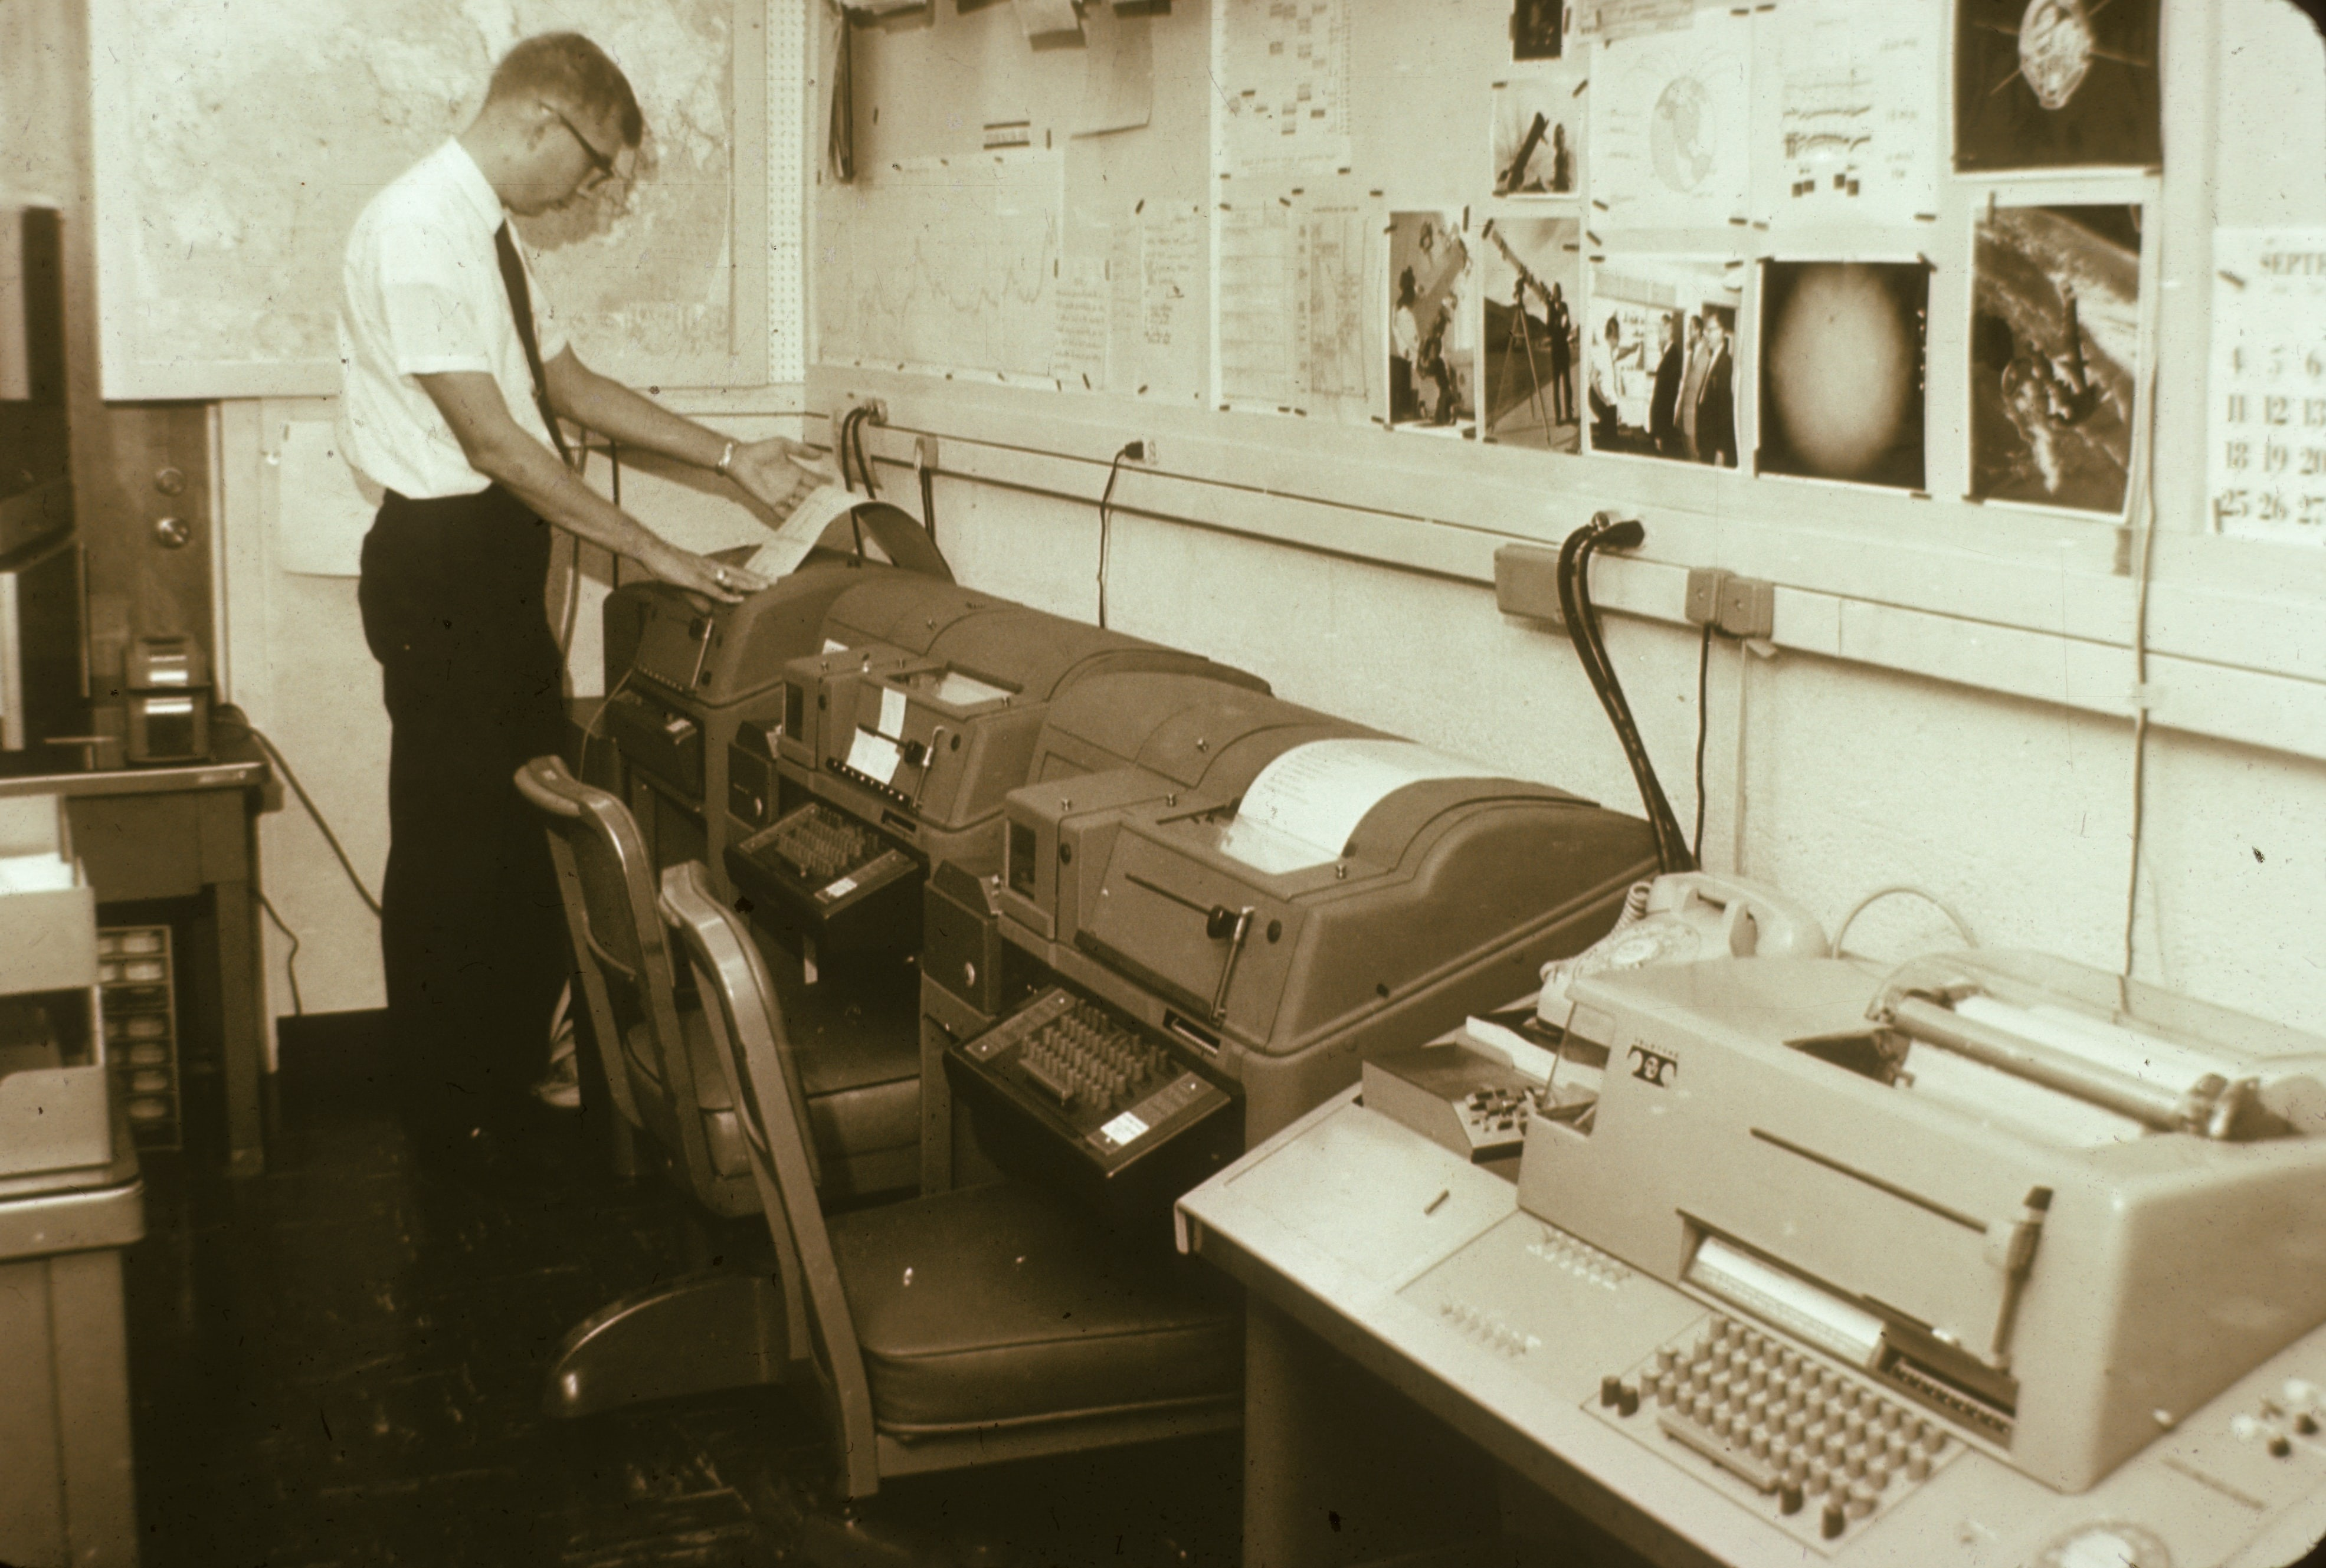 Sepia-tinted picture of man working on old-fashioned computers